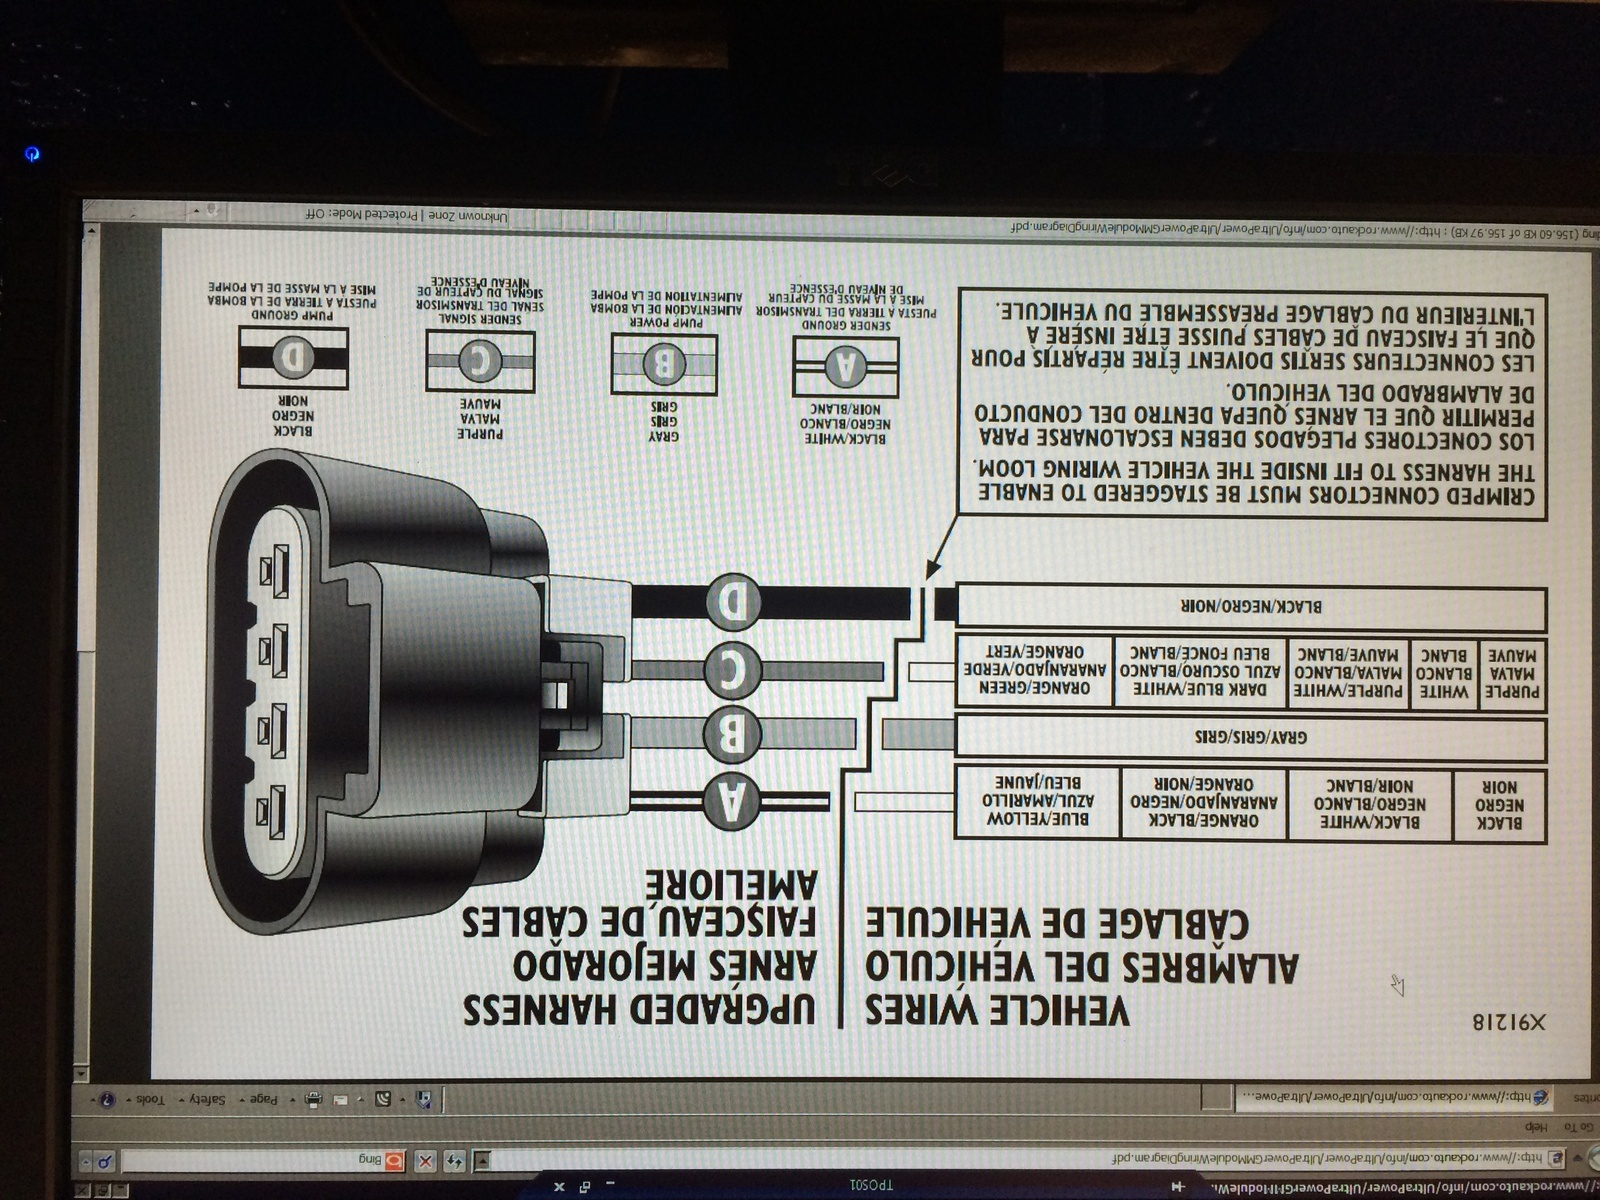 1996 Chevy Silverado Radio Wiring Diagram from static.cargurus.com